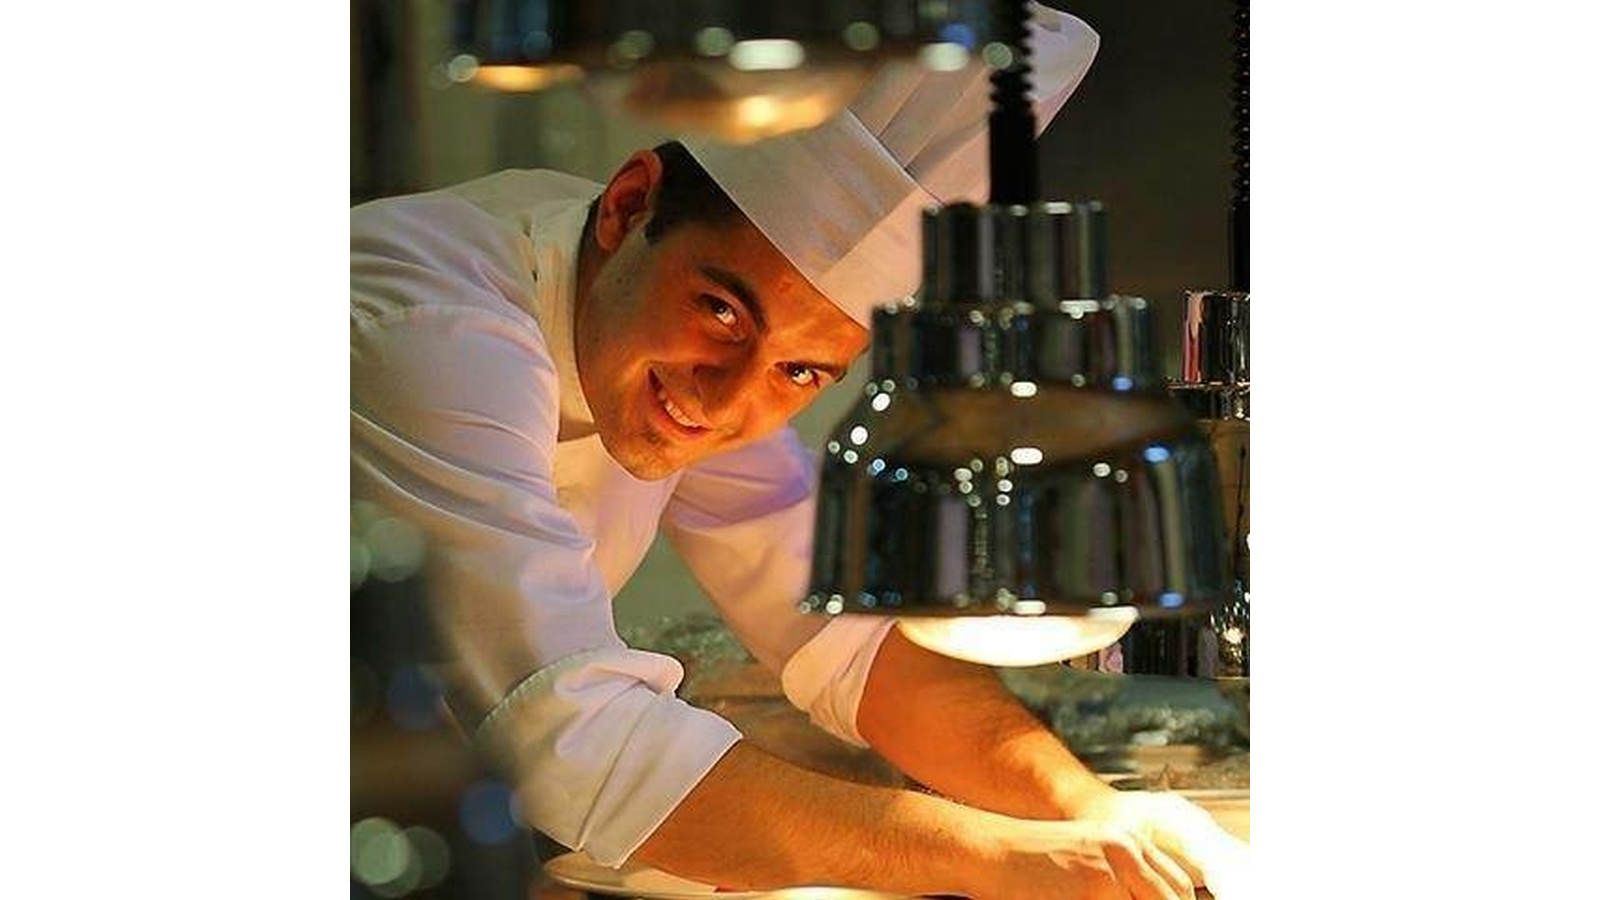 Chef Serhat Eliçora from the St. Regis Istanbul will be cooking at the Culinary Safari 2017 in Mallorca.